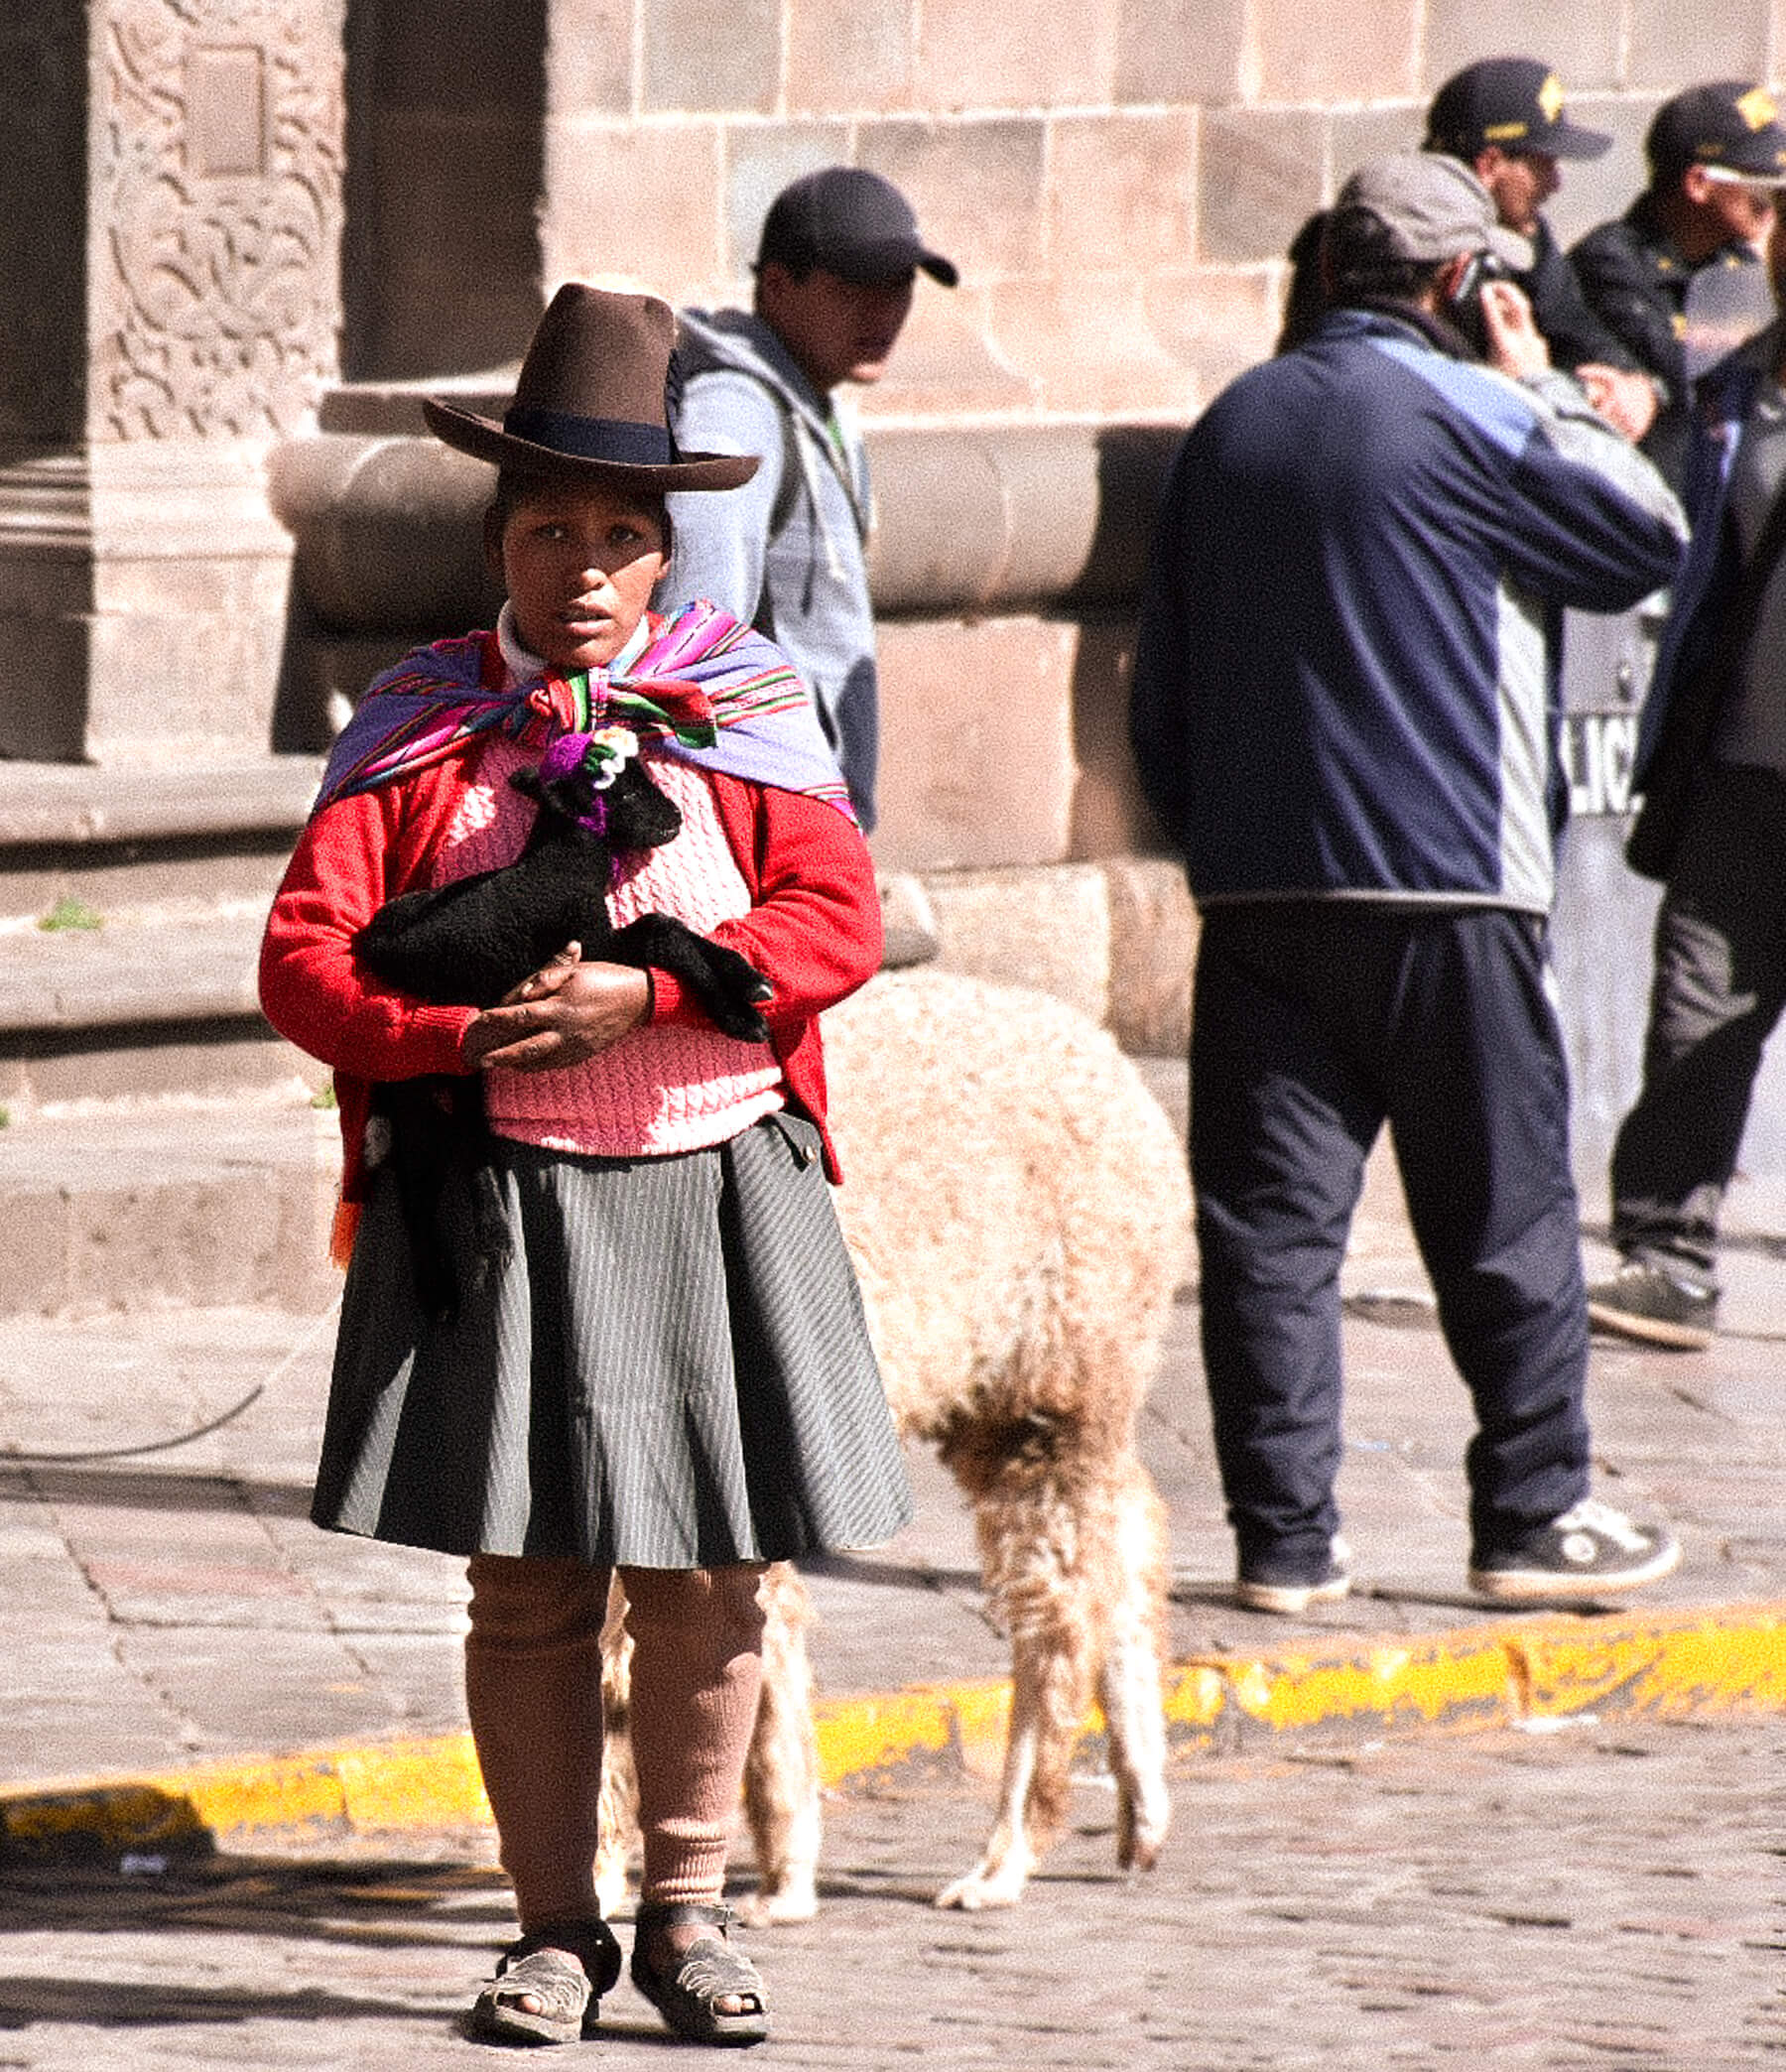 A local peruvian lady dressed in traditional clothing whilst holding a baby alpaca that is wearing a knitted hat